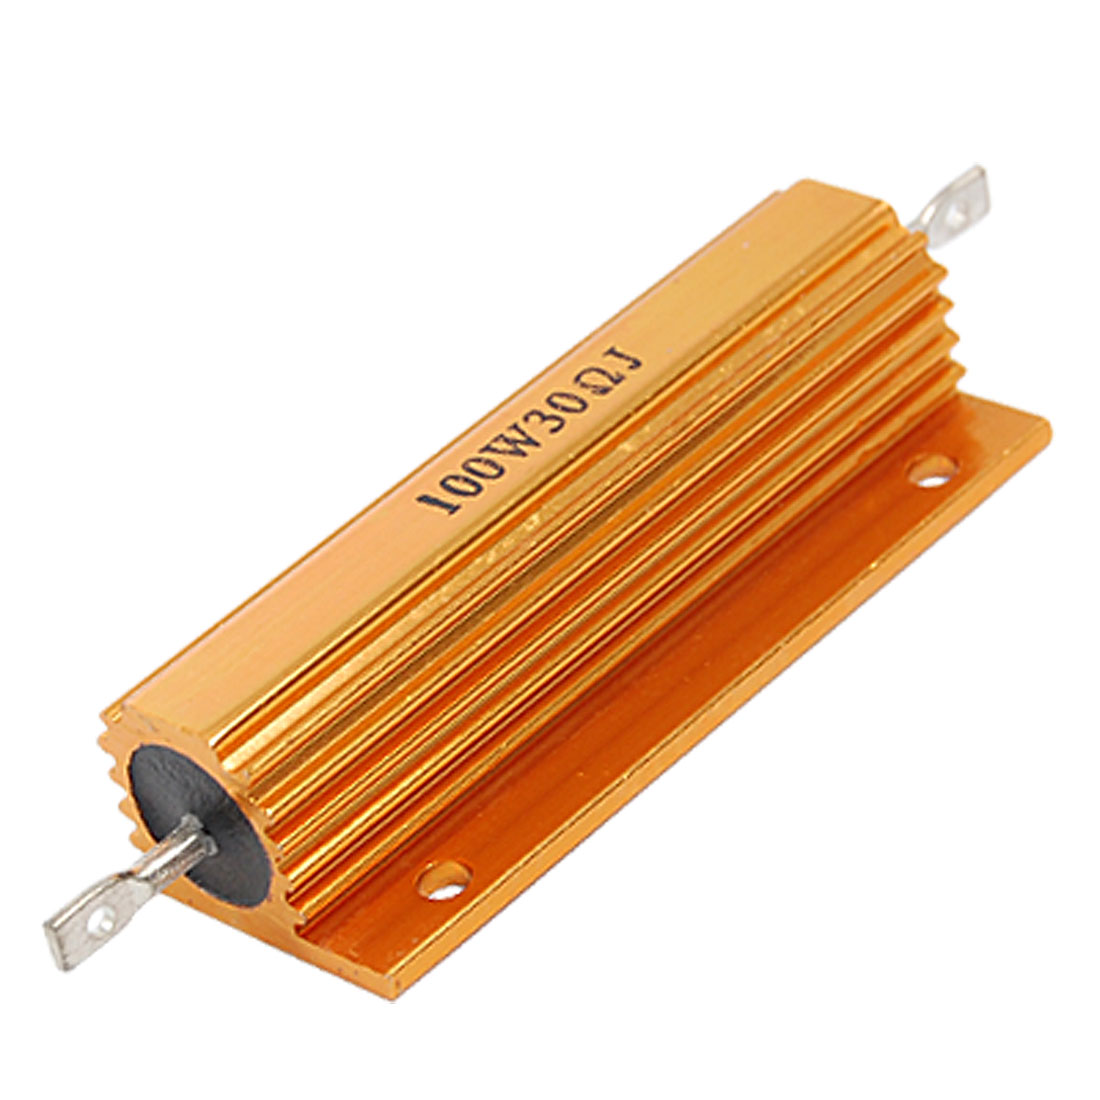 100W 30 Ohm 5% Chasis Mounted Aluminum Housed Resistor